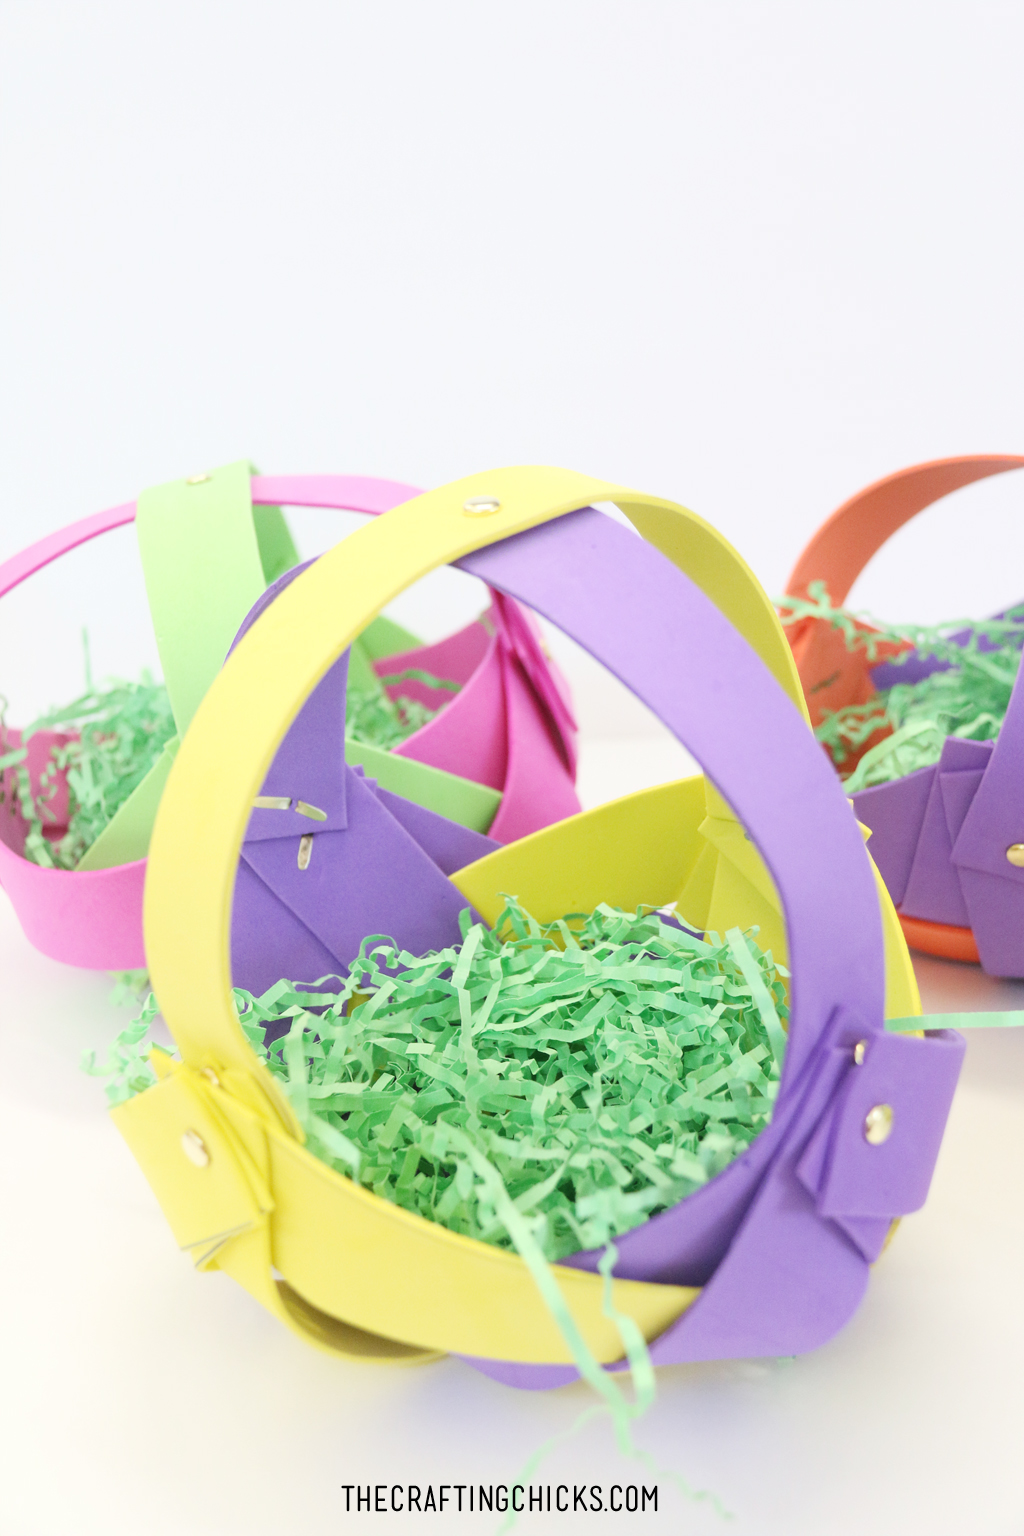 Foam strips woven together to make a basket with brads, filled with green Easter grass.